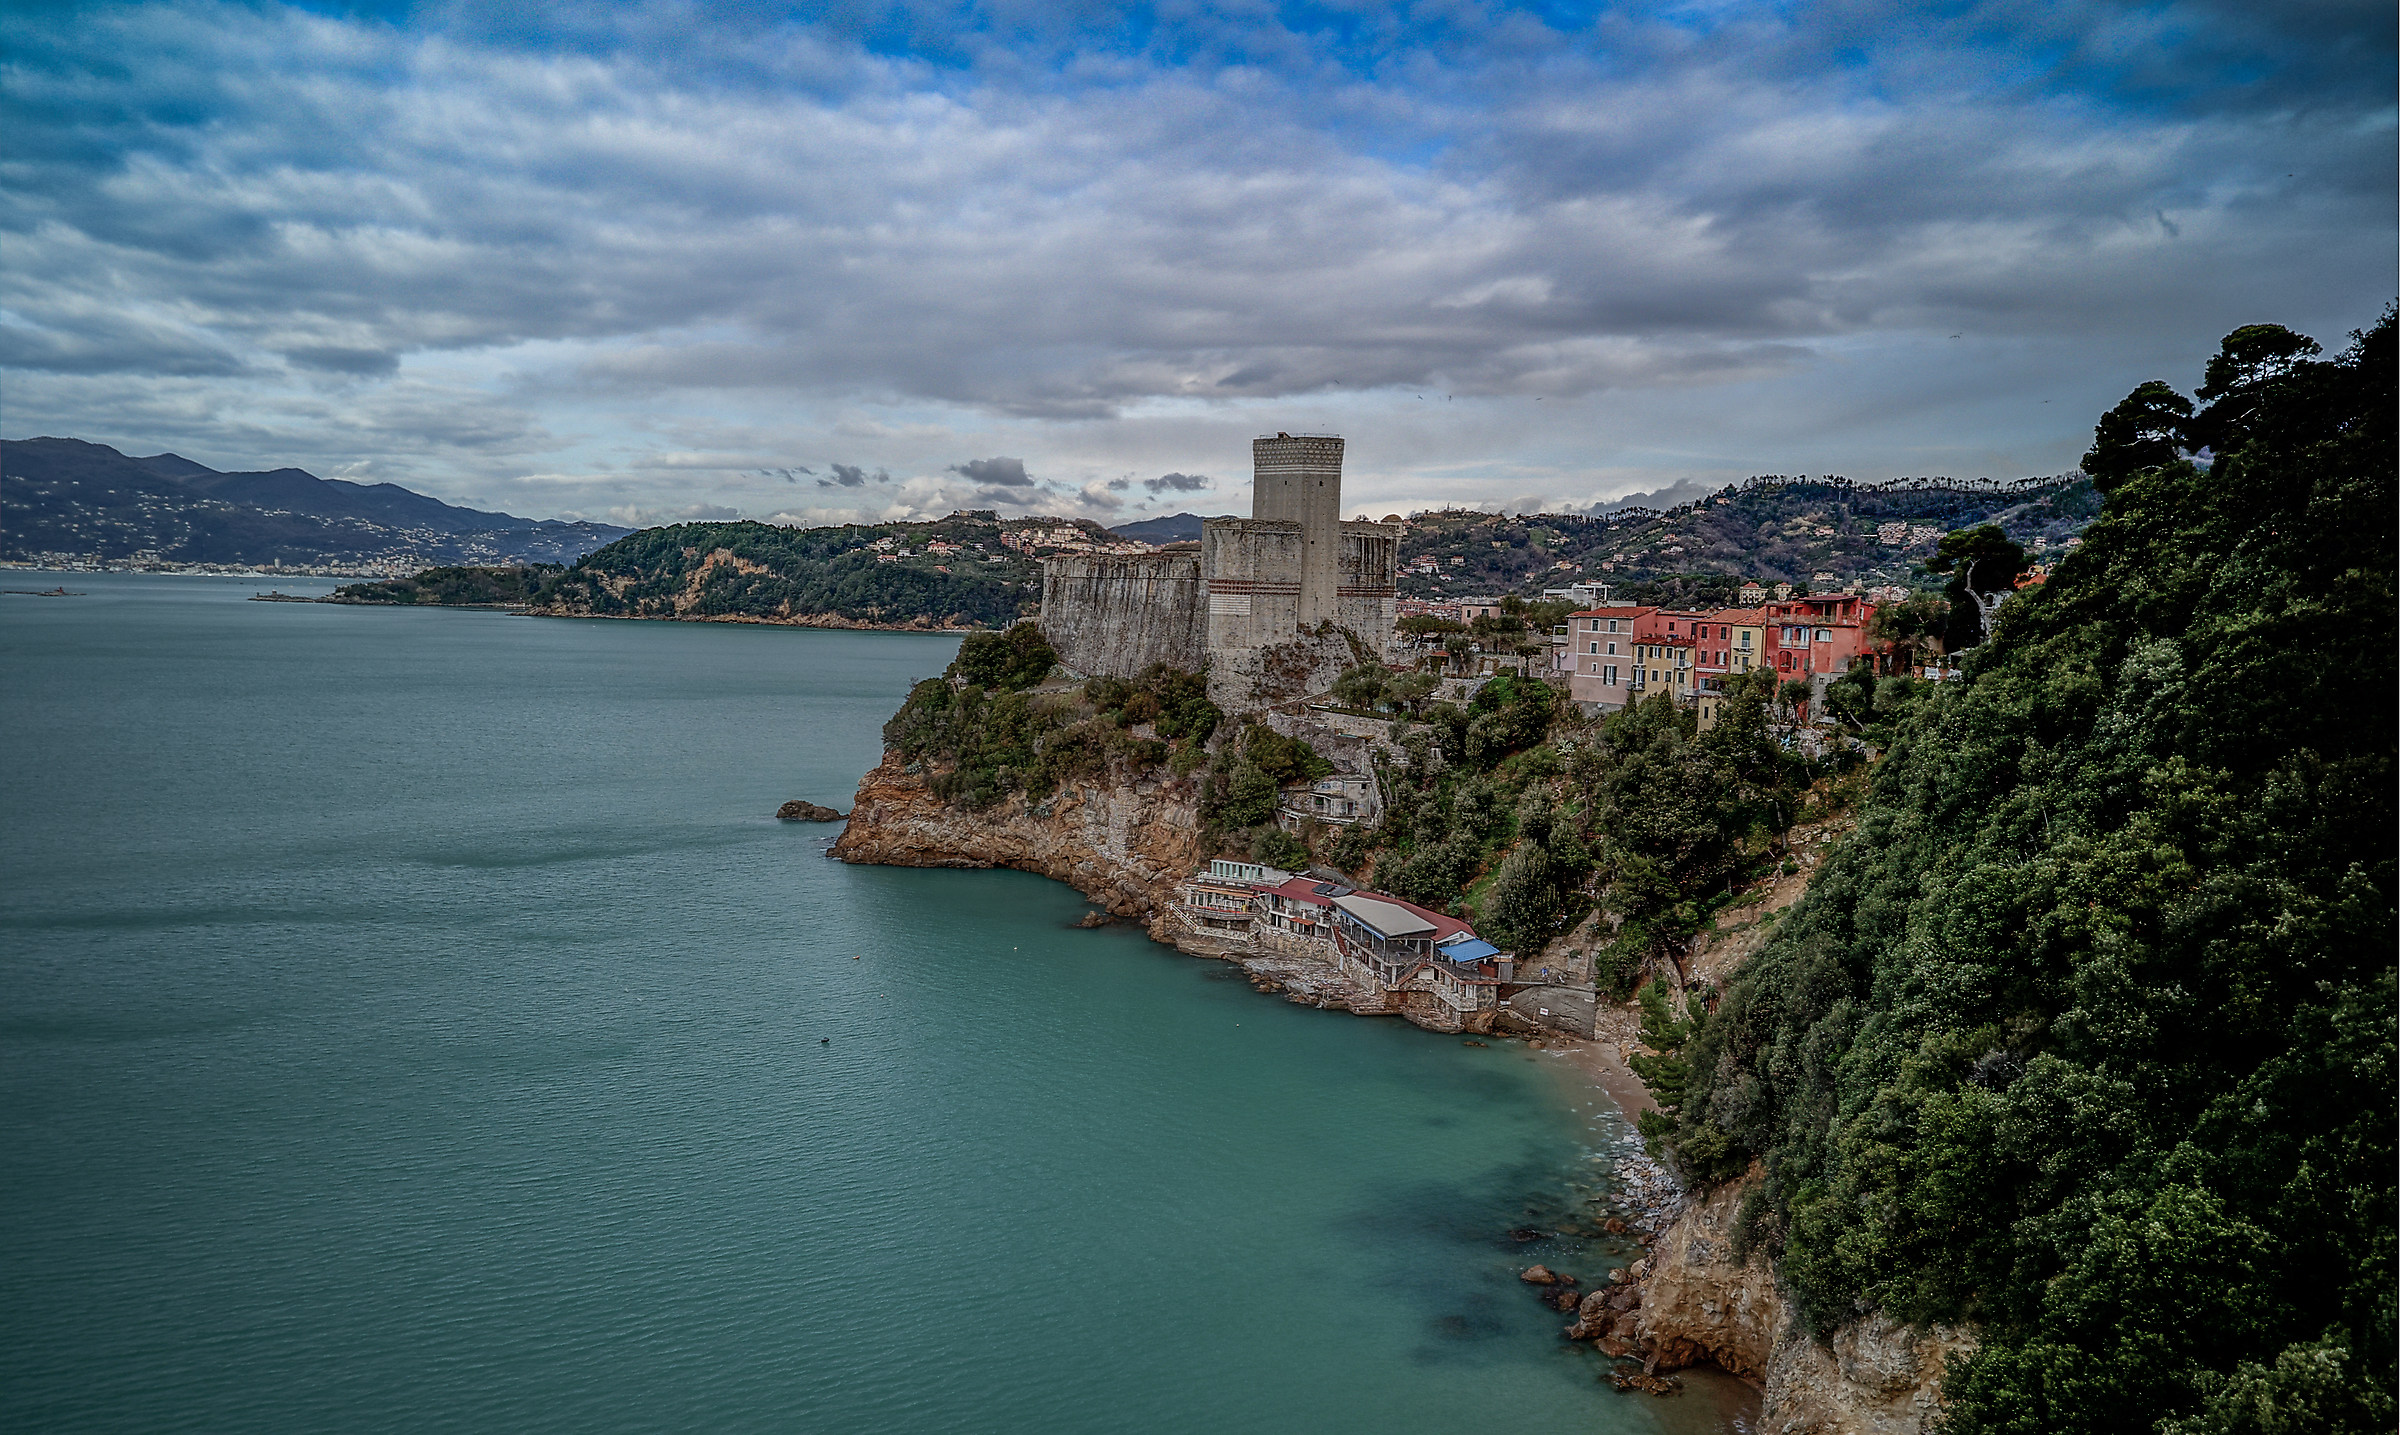 Castle of Lerici from the sky ......